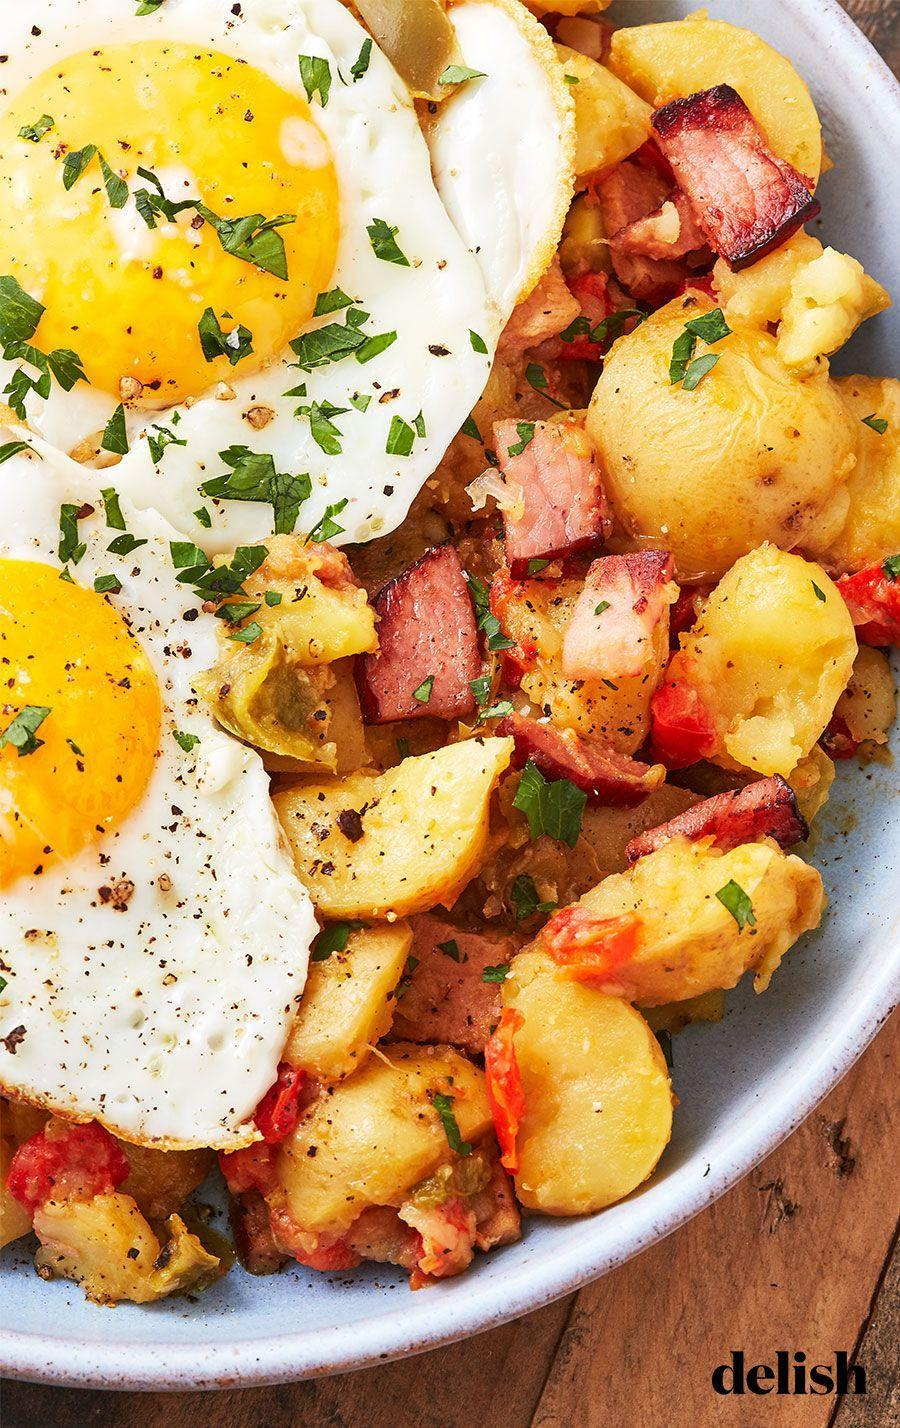 "<p>Veggies, potatoes, and protein are the keys to a filling breakfast.</p><p>Get the recipe from <a href=""https://www.delish.com/cooking/recipe-ideas/a27422695/instant-pot-hash-recipe/"" rel=""nofollow noopener"" target=""_blank"" data-ylk=""slk:Delish"" class=""link rapid-noclick-resp"">Delish</a>.</p>"